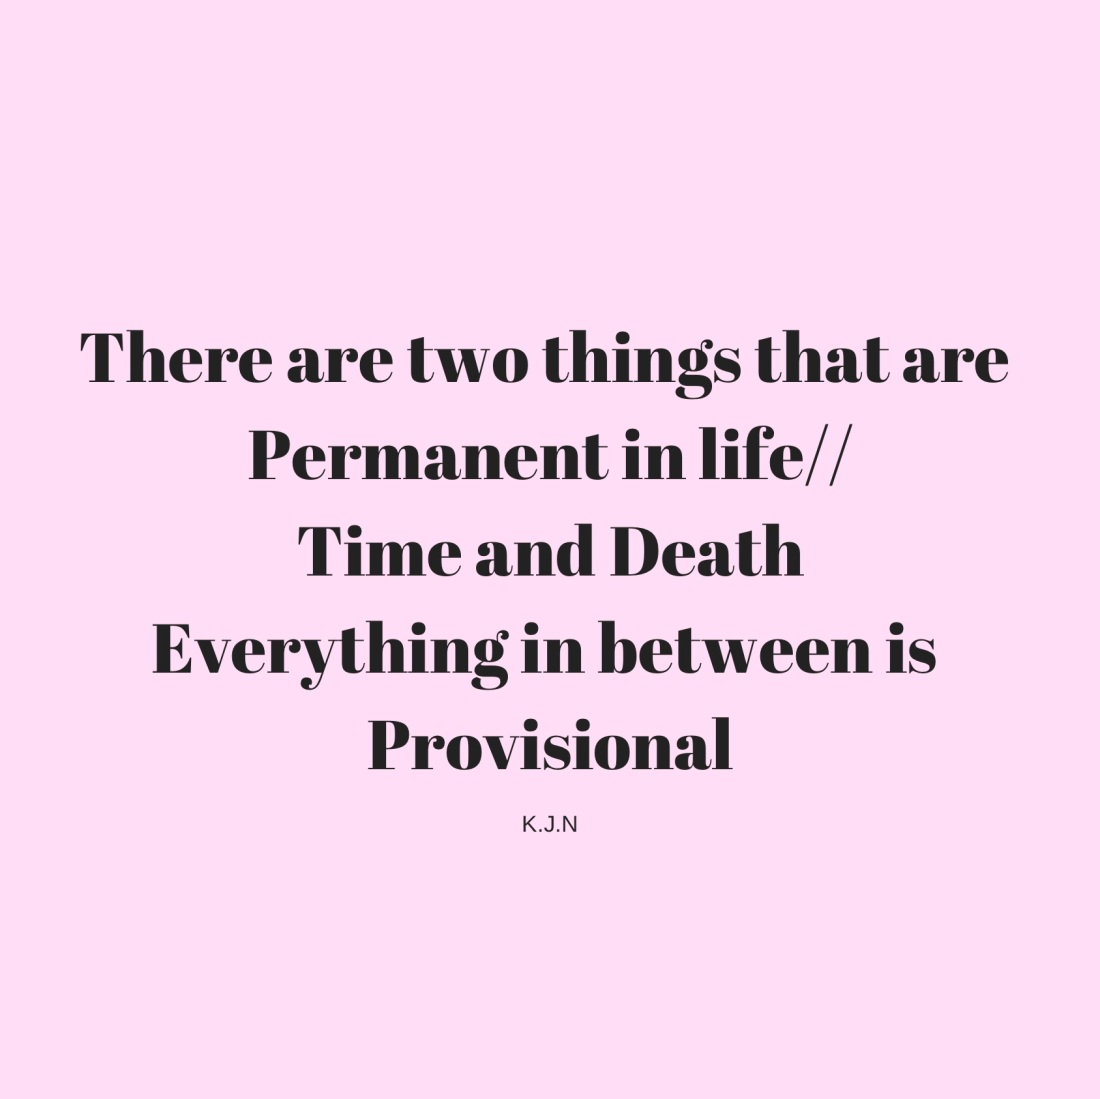 There are two things that are Permanent in lifeTime and DeathEverything in 1